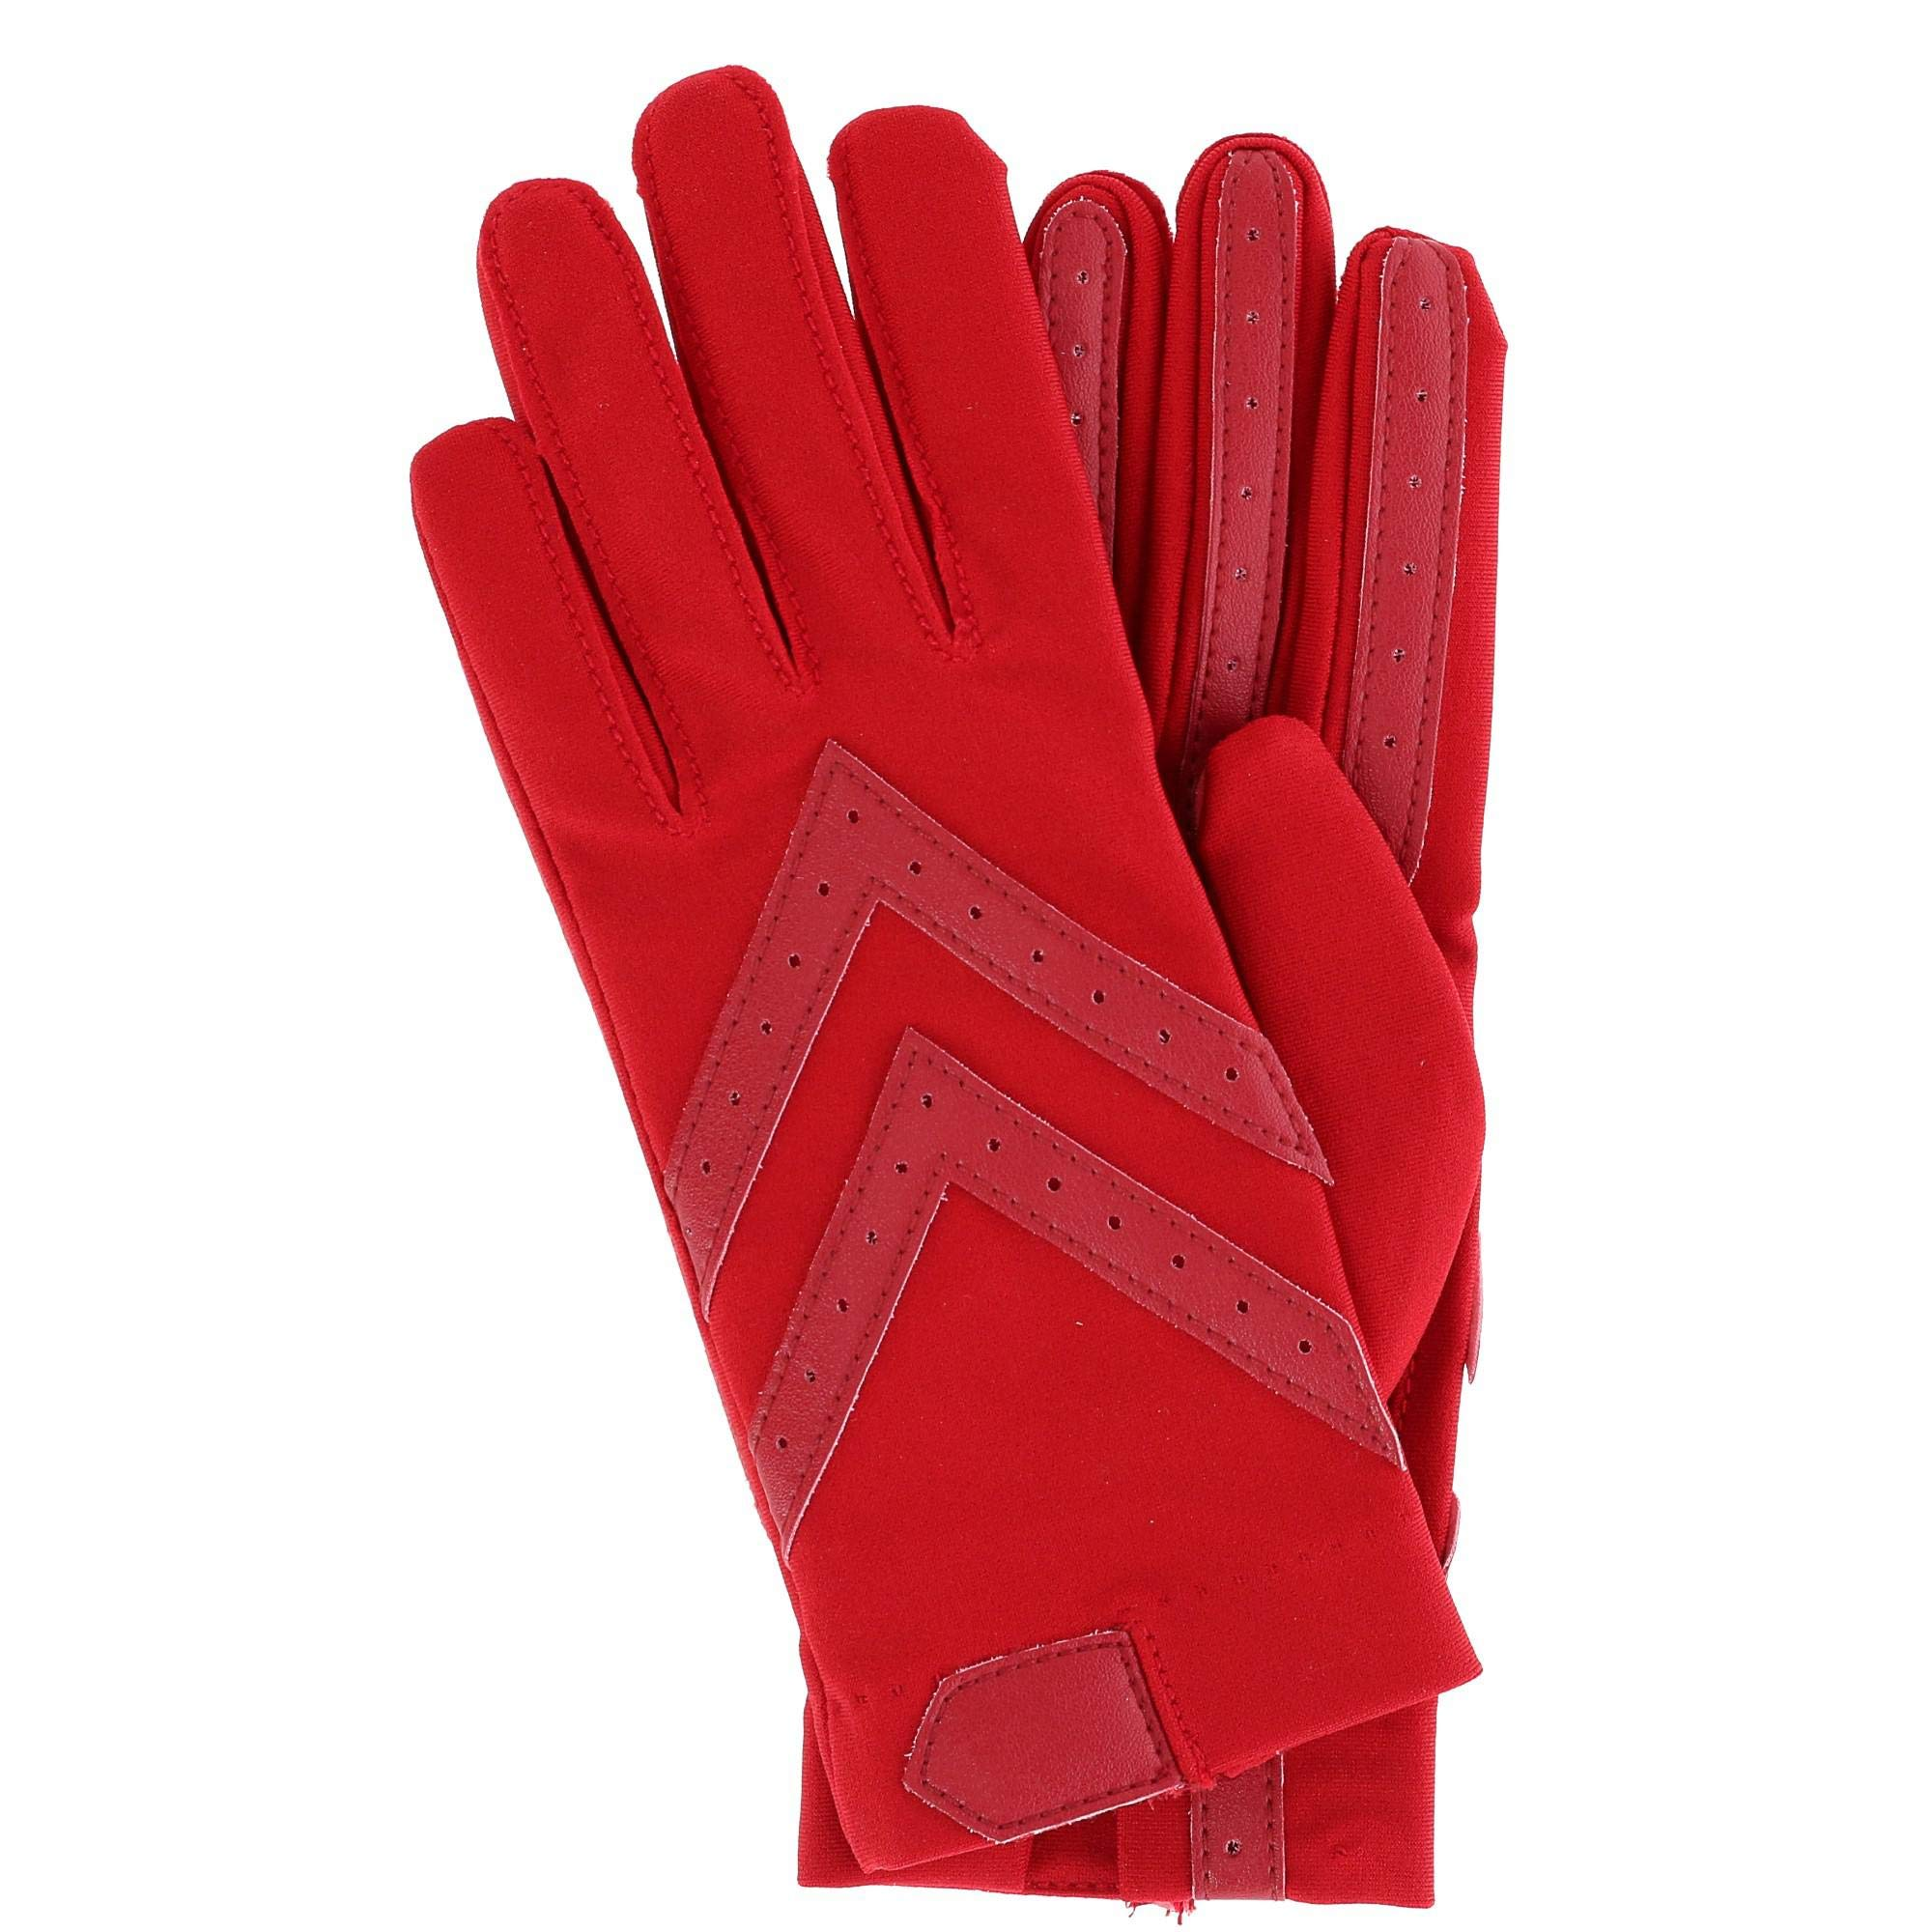 Isotoner Short Tech Touch Driving Gloves, Red, Small/Medium